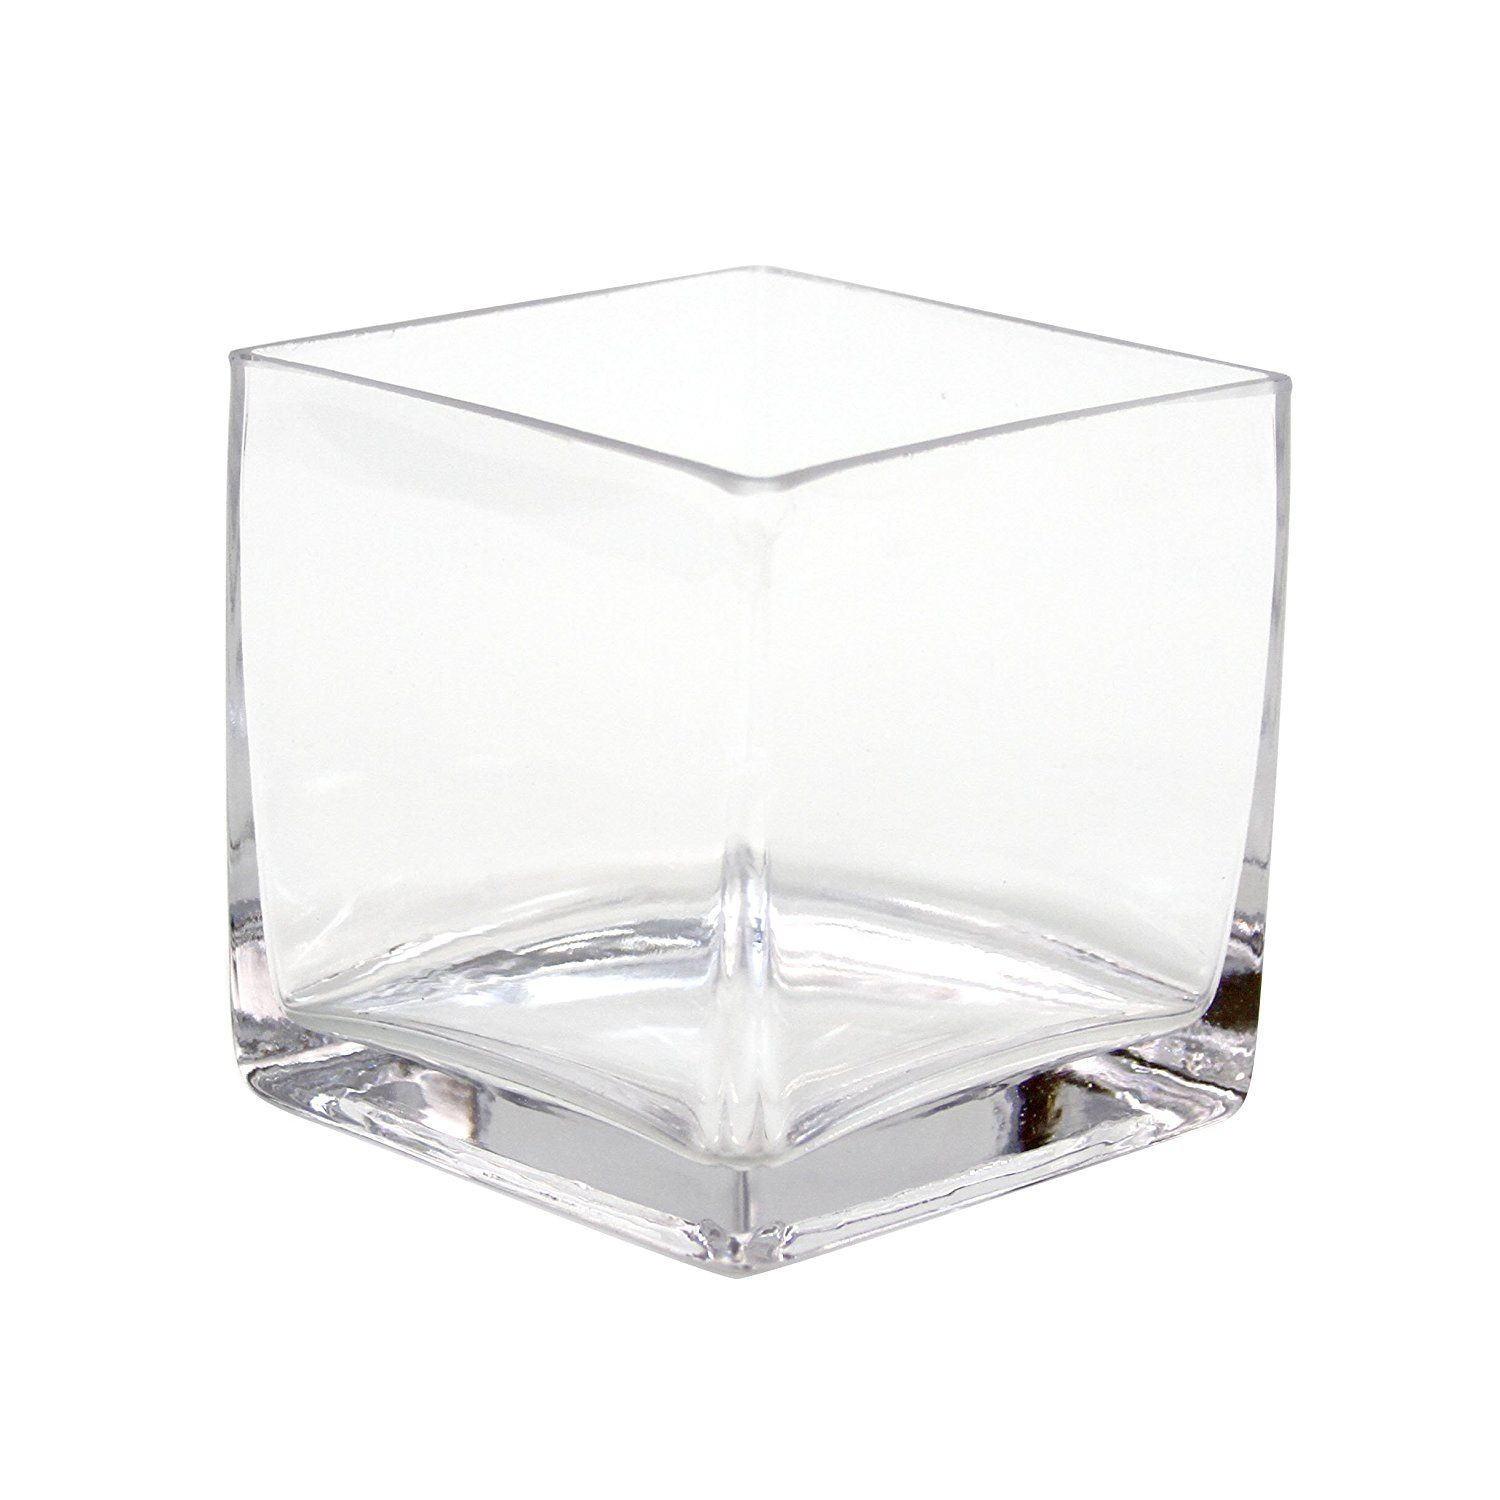 inexpensive vases weddings of koyal wholesale 404343 12 pack cube square glass vases 4 by 4 by 4 pertaining to koyal wholesale 404343 12 pack cube square glass vases 4 by 4 by 4